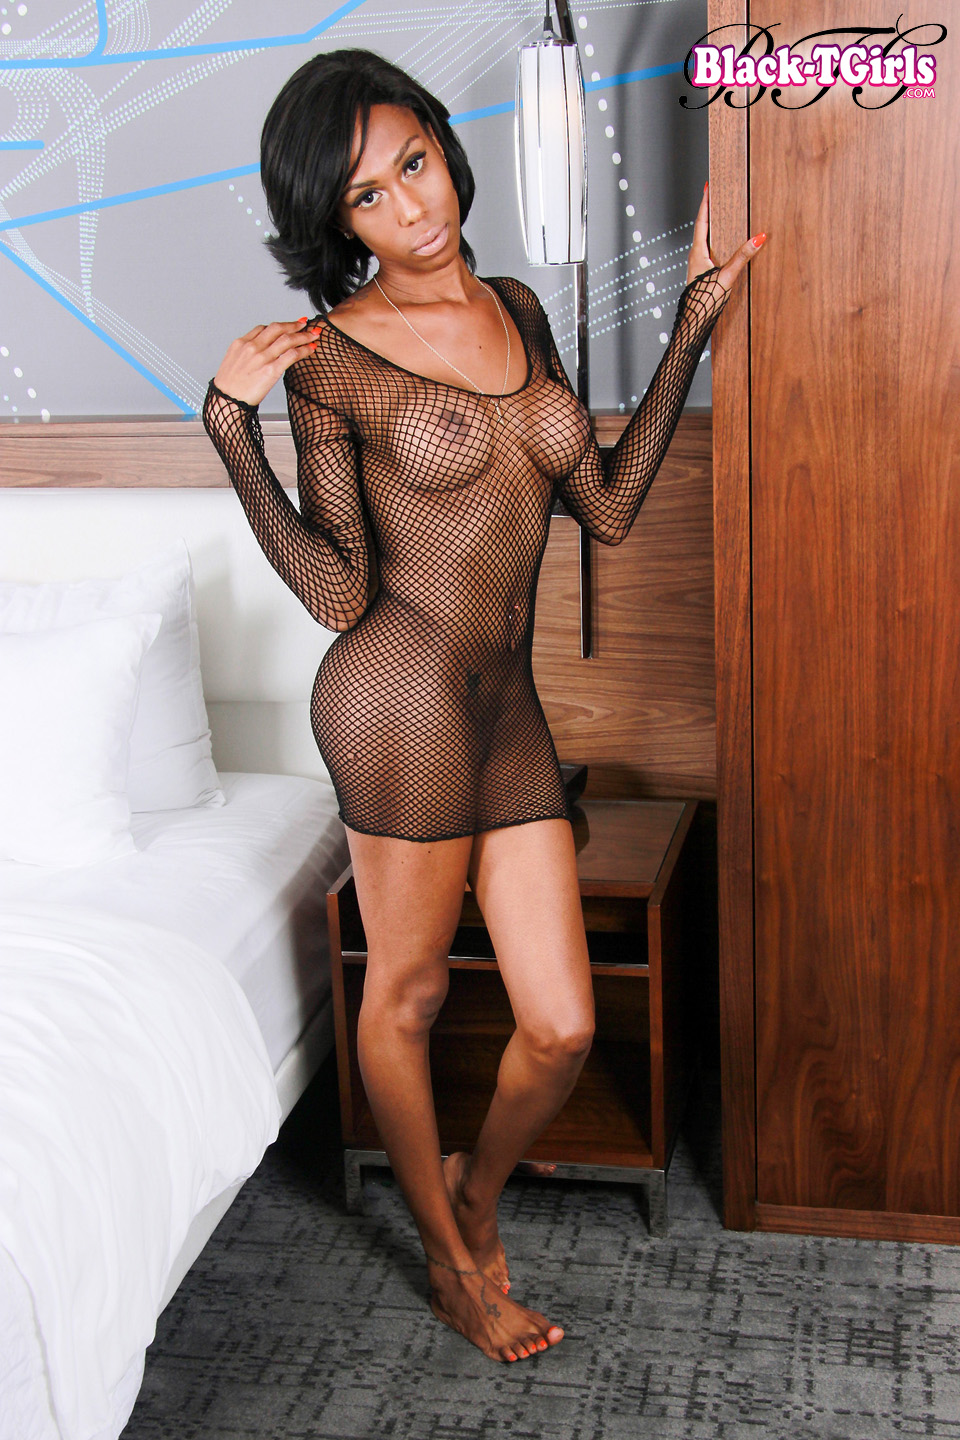 Hot Black Tgirls, Ebony Shemales  Tranny Pornstars-2731